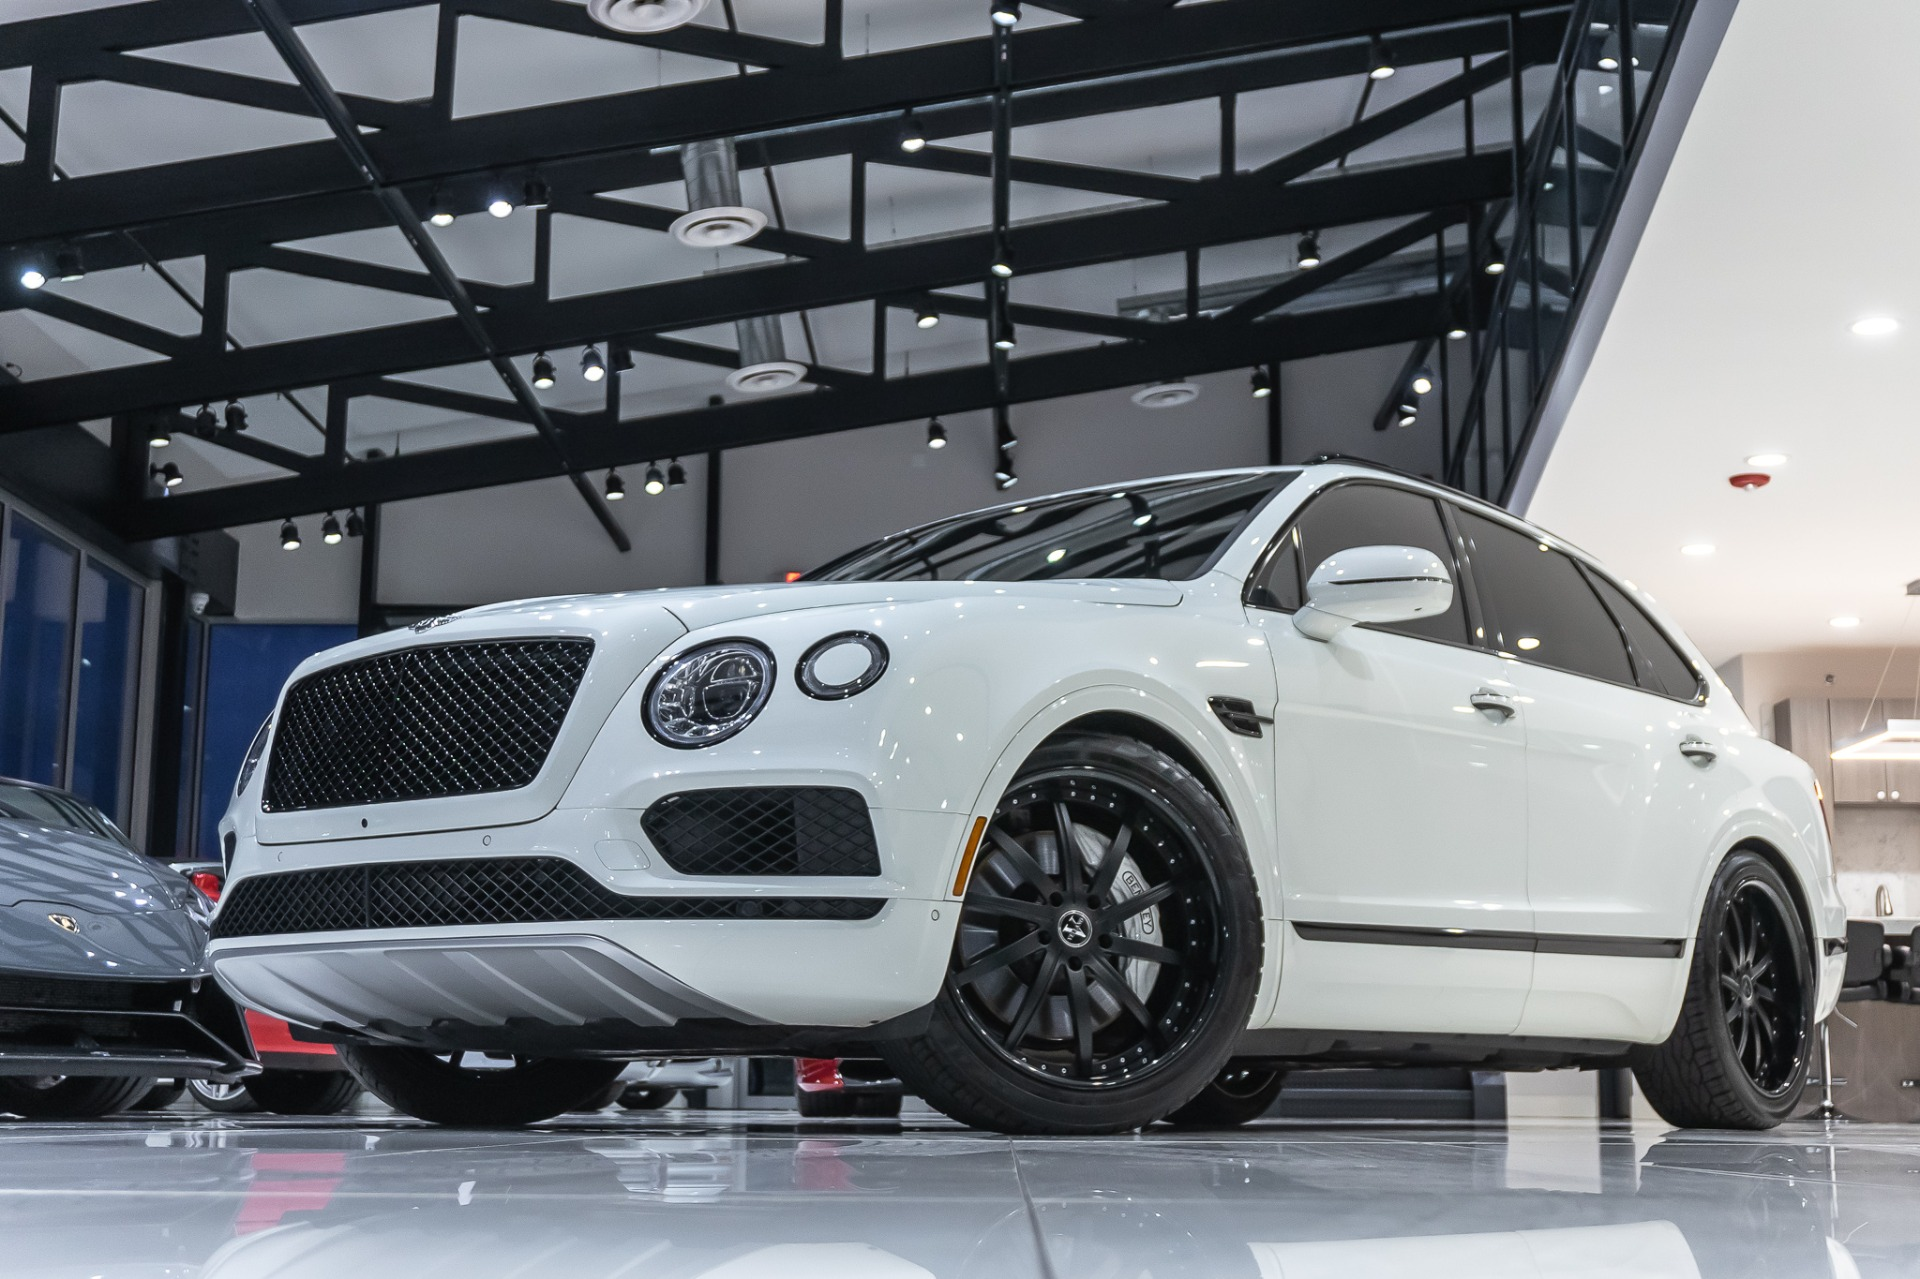 Used 2017 Bentley Bentayga W12 Suv Msrp 243k Loaded Serviced Upgraded 13k Wheels For Sale Special Pricing Chicago Motor Cars Stock 16088a